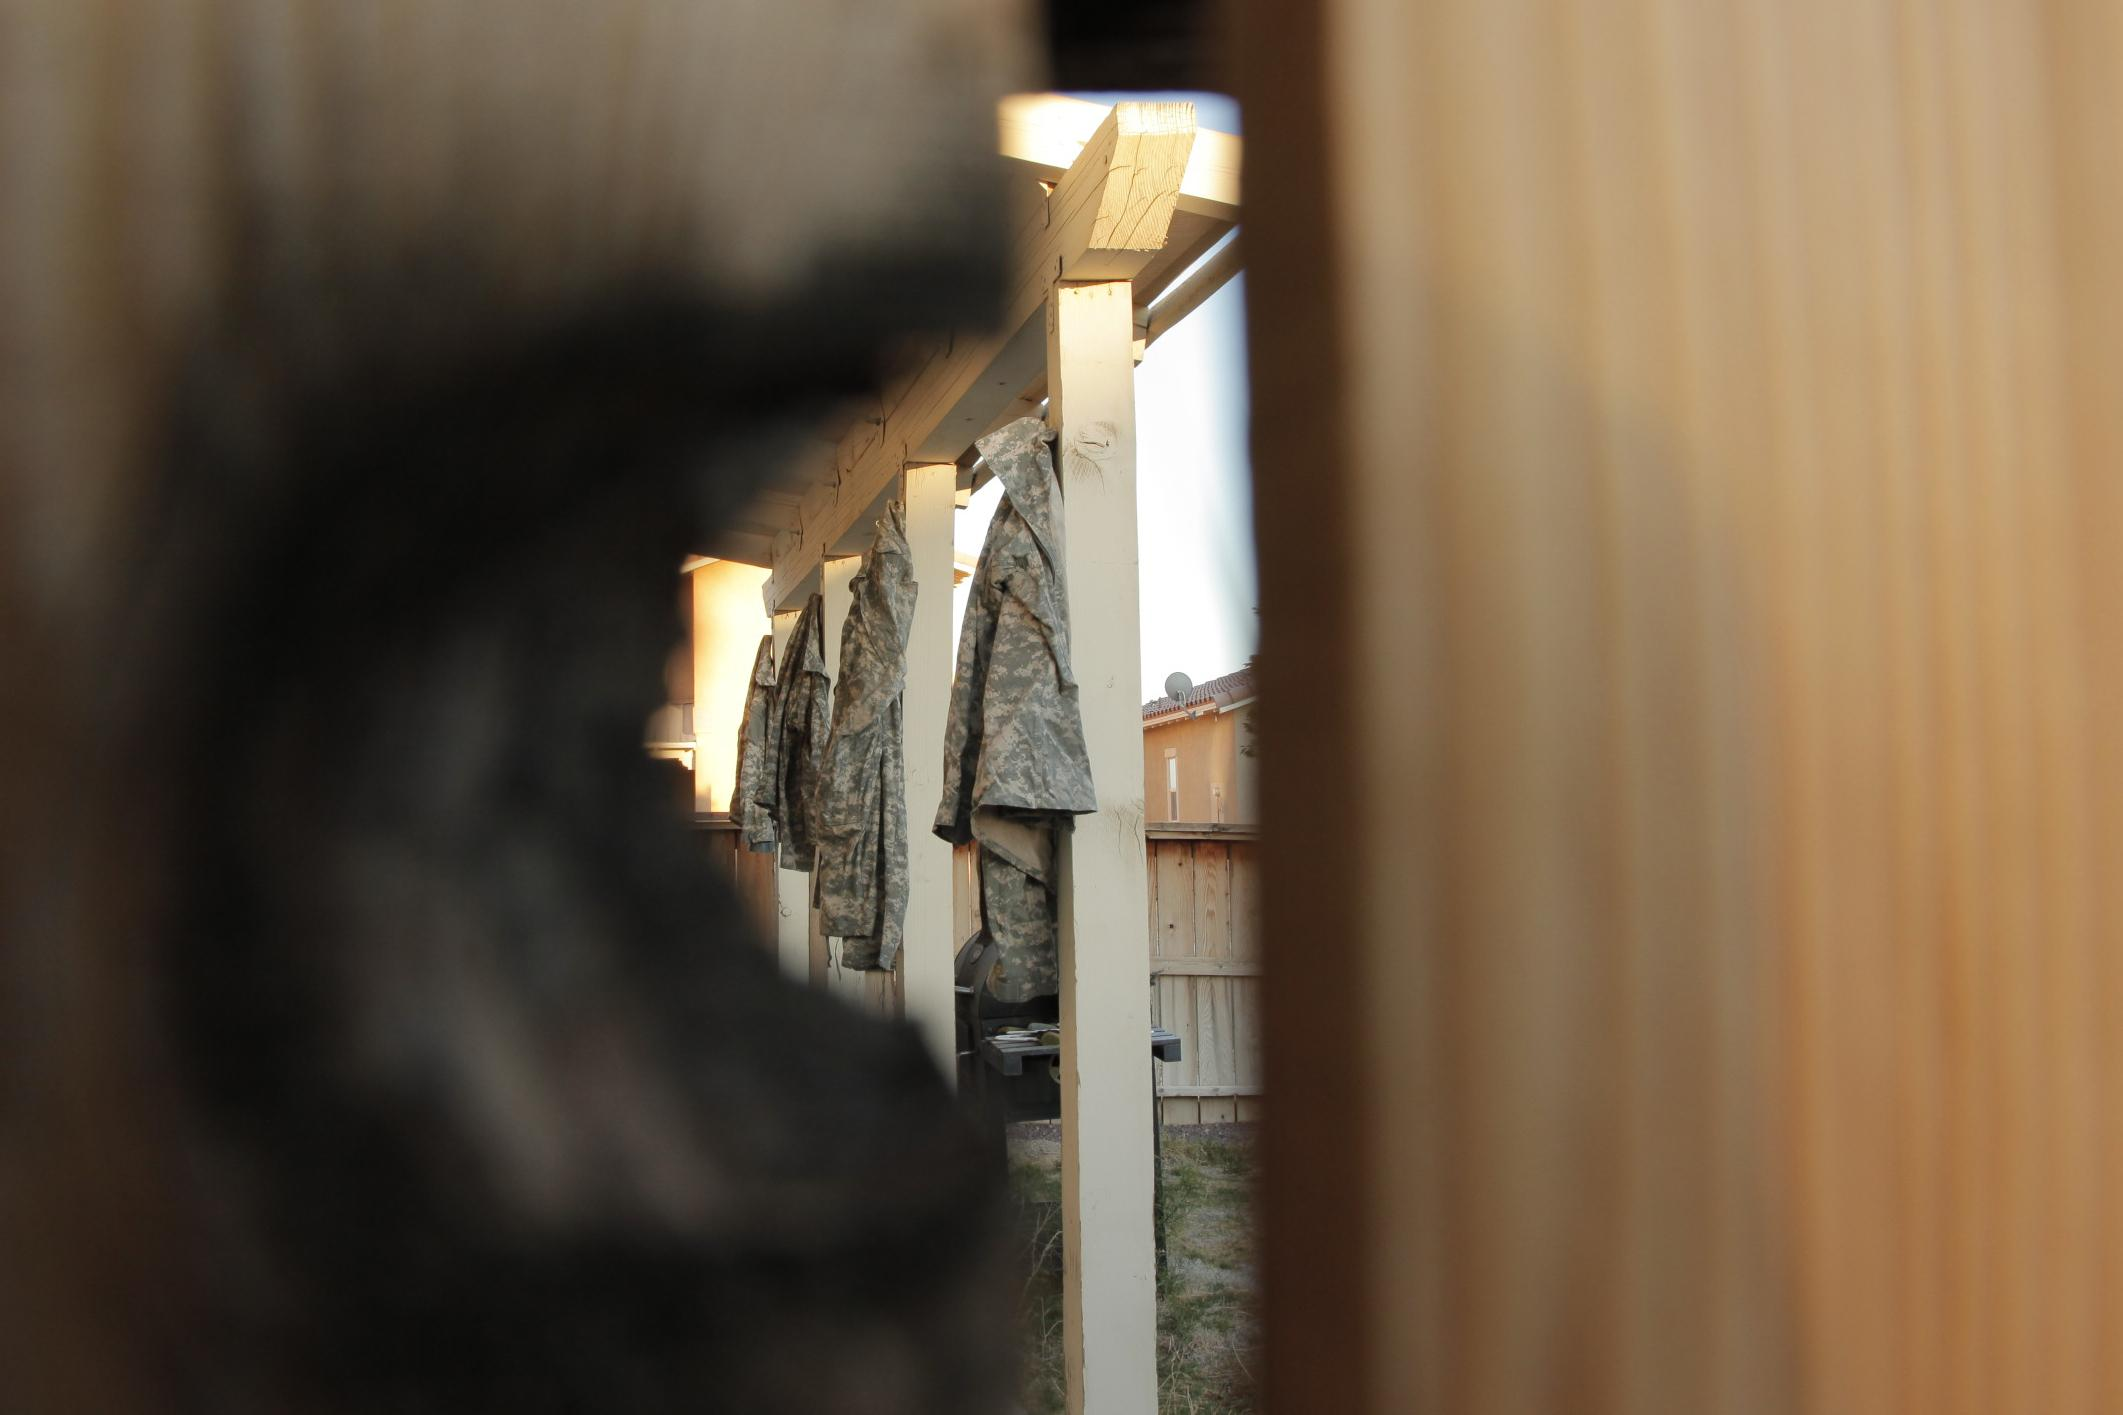 ACUs out to dry, Fort Irwin, CA